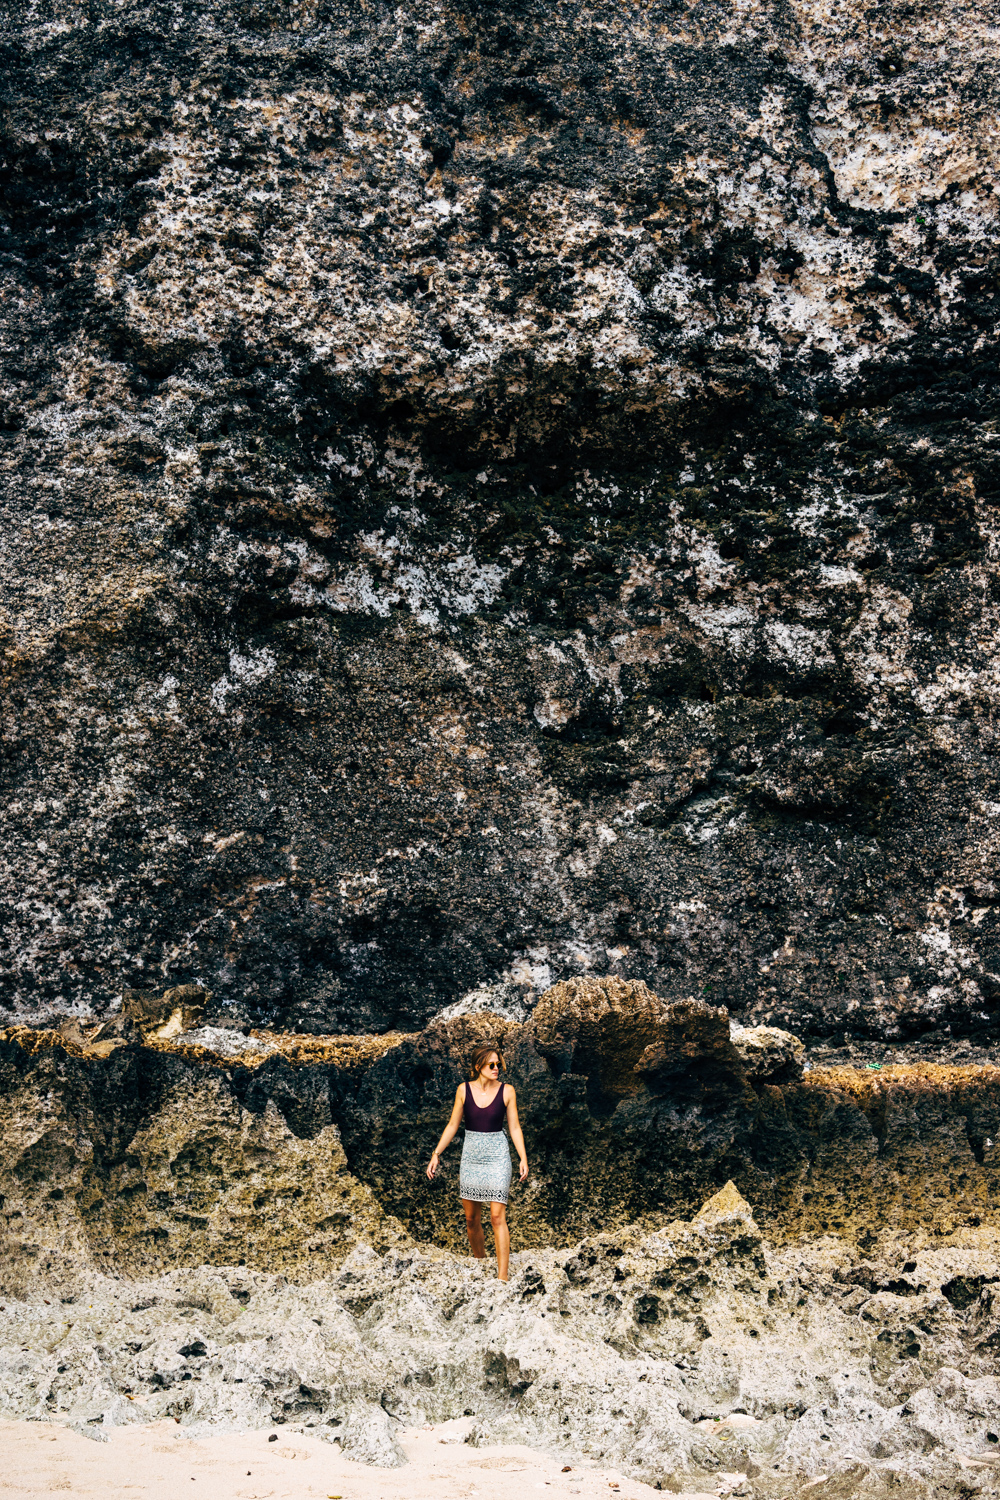 Exploring the craggy limestone coastline of Uluwatu.